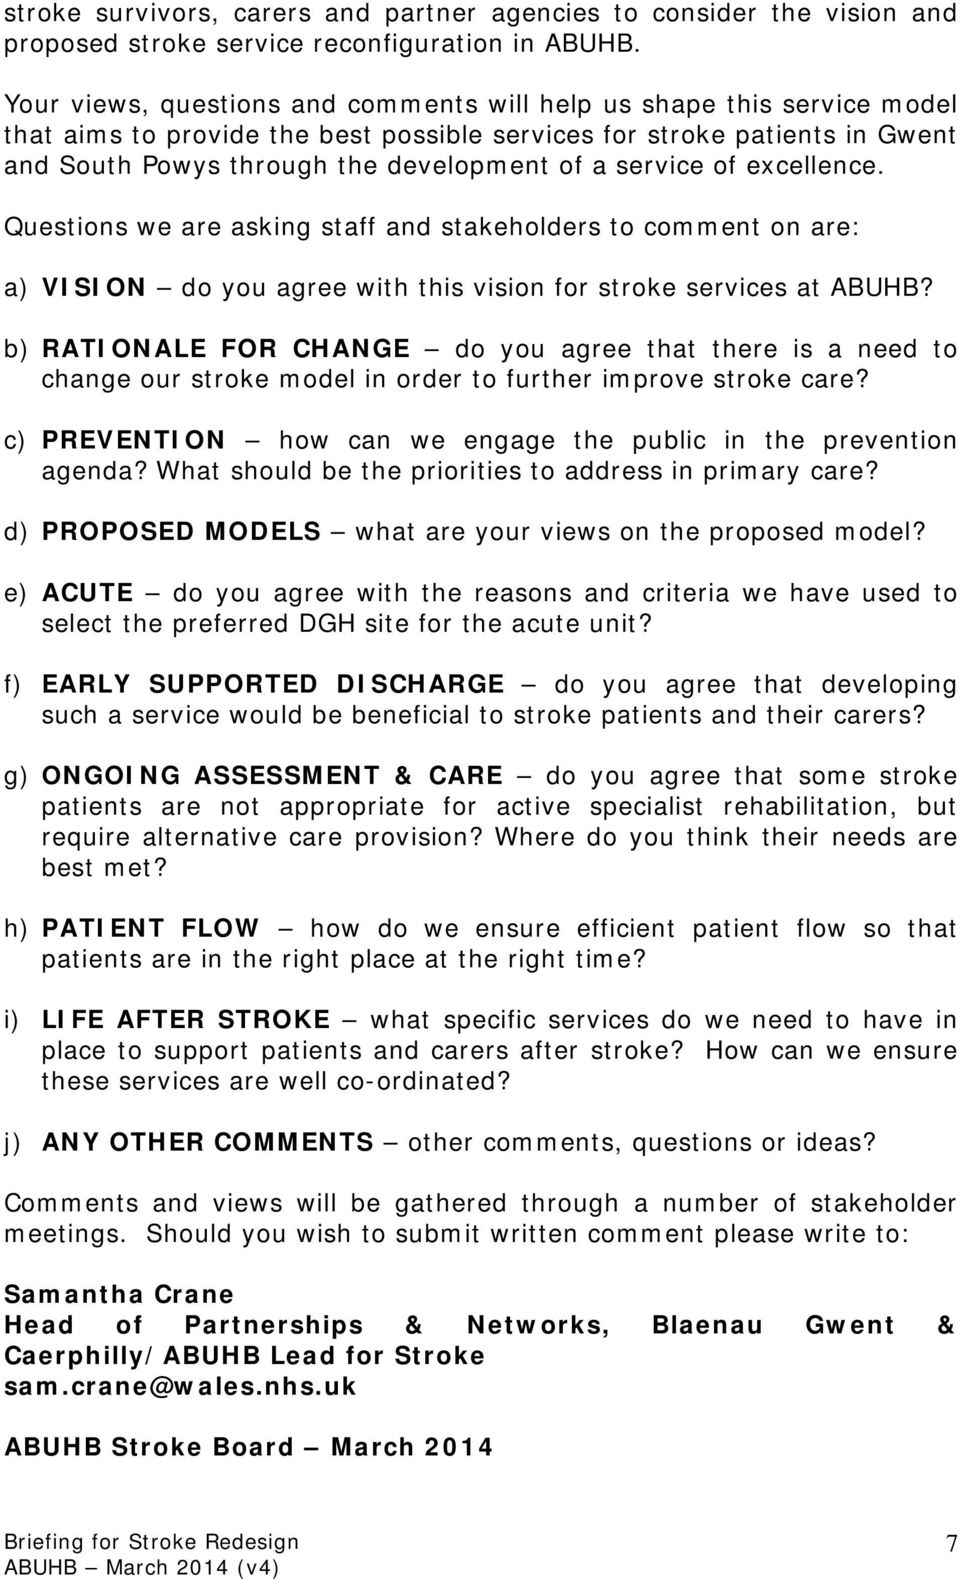 service of excellence. Questions we are asking staff and stakeholders to comment on are: a) VISION do you agree with this vision for stroke services at ABUHB?